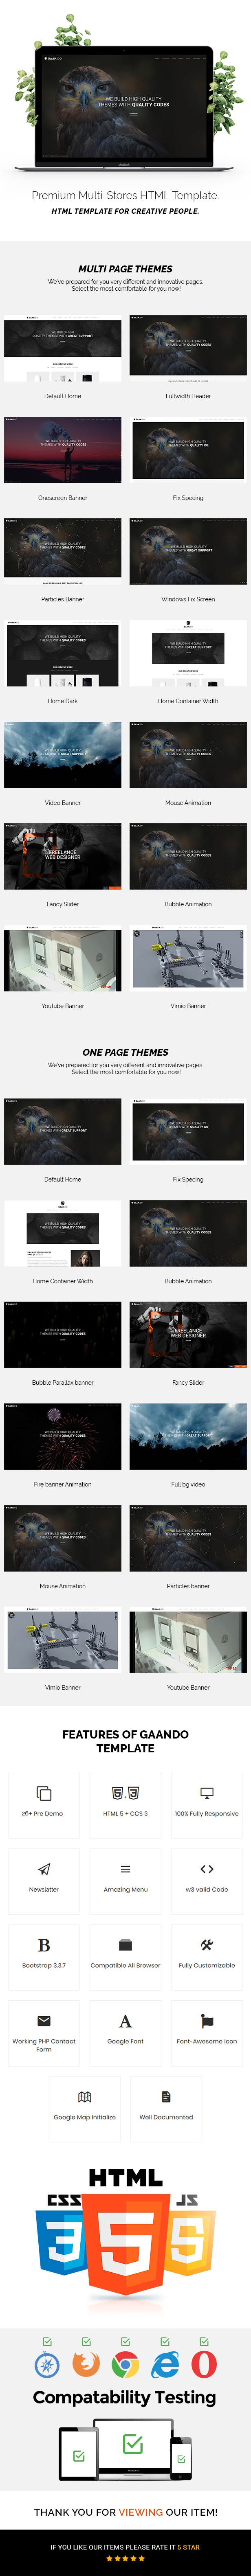 Gaando - Responsive Portfolio And Multipurpose HTML Template - 1